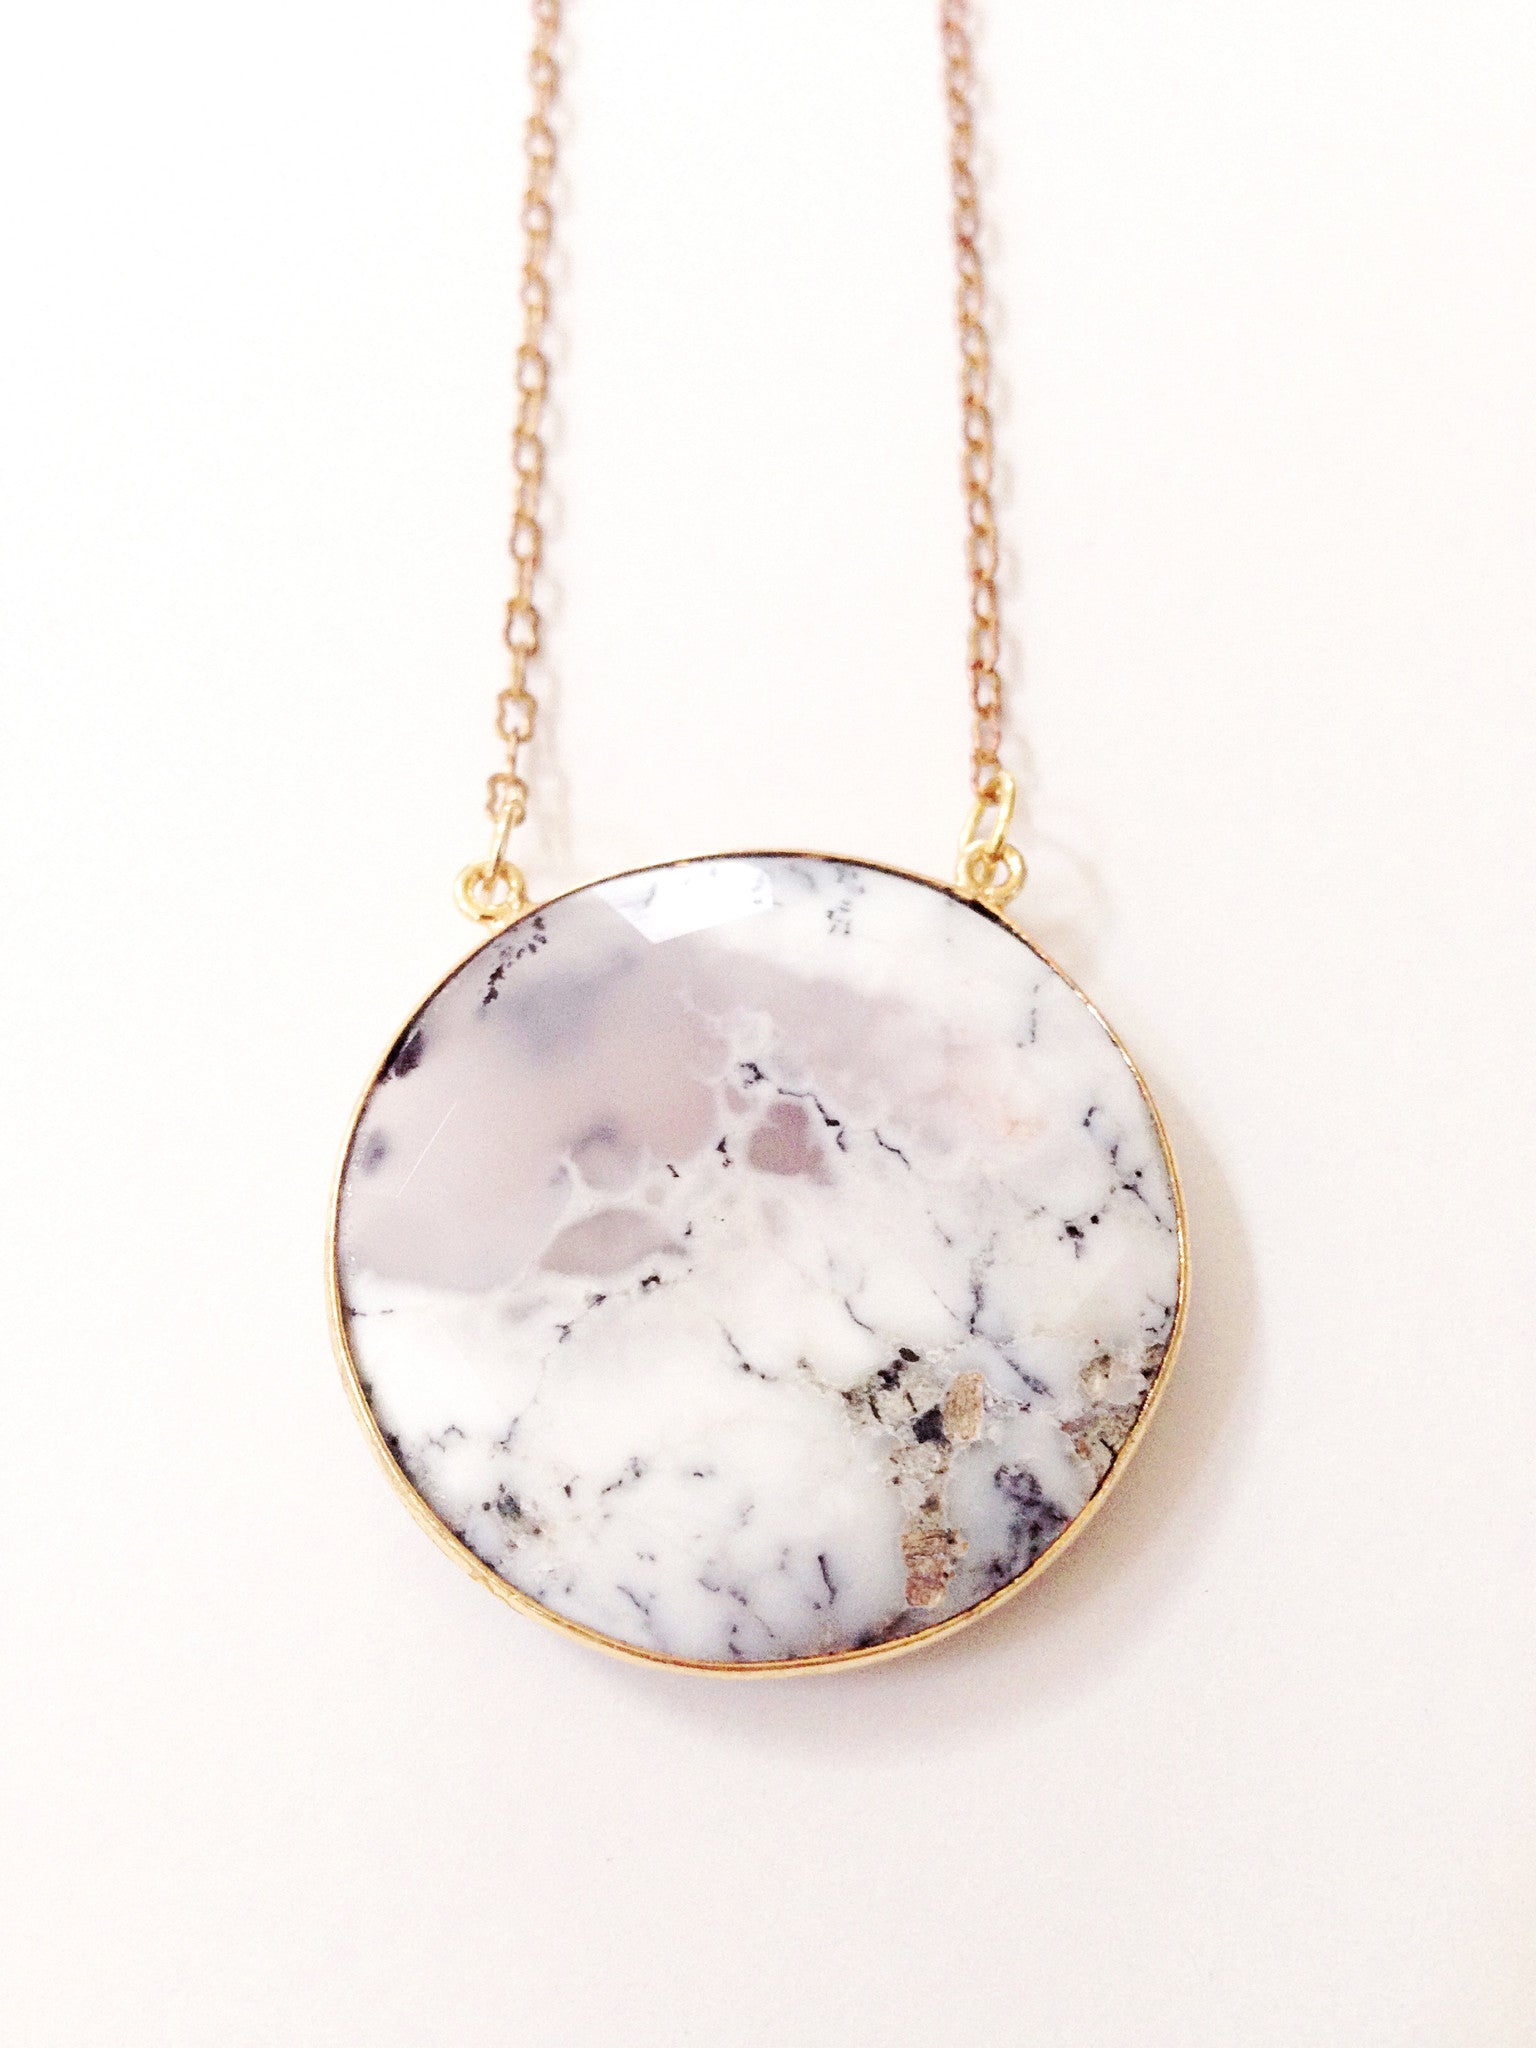 Dendritic Agate + 14k gold + Full Moon amulet